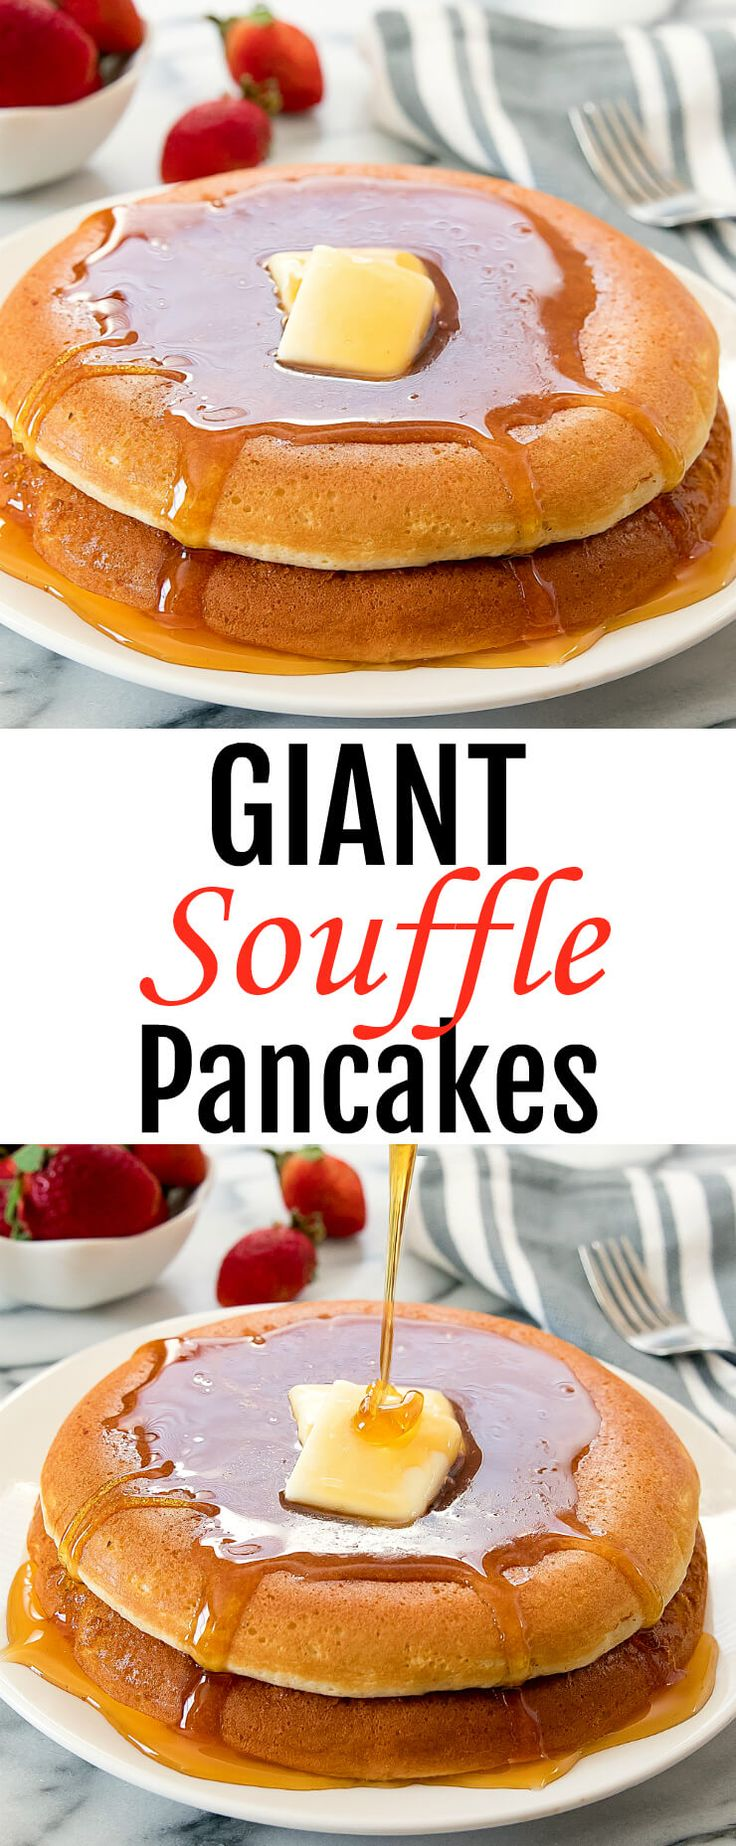 Giant Souffle Pancakes. Inspired by Japanese-style souffle pancakes, these giant pancakes are light and fluffy, cooked on the stove top, and make a fun brunch or breakfast.